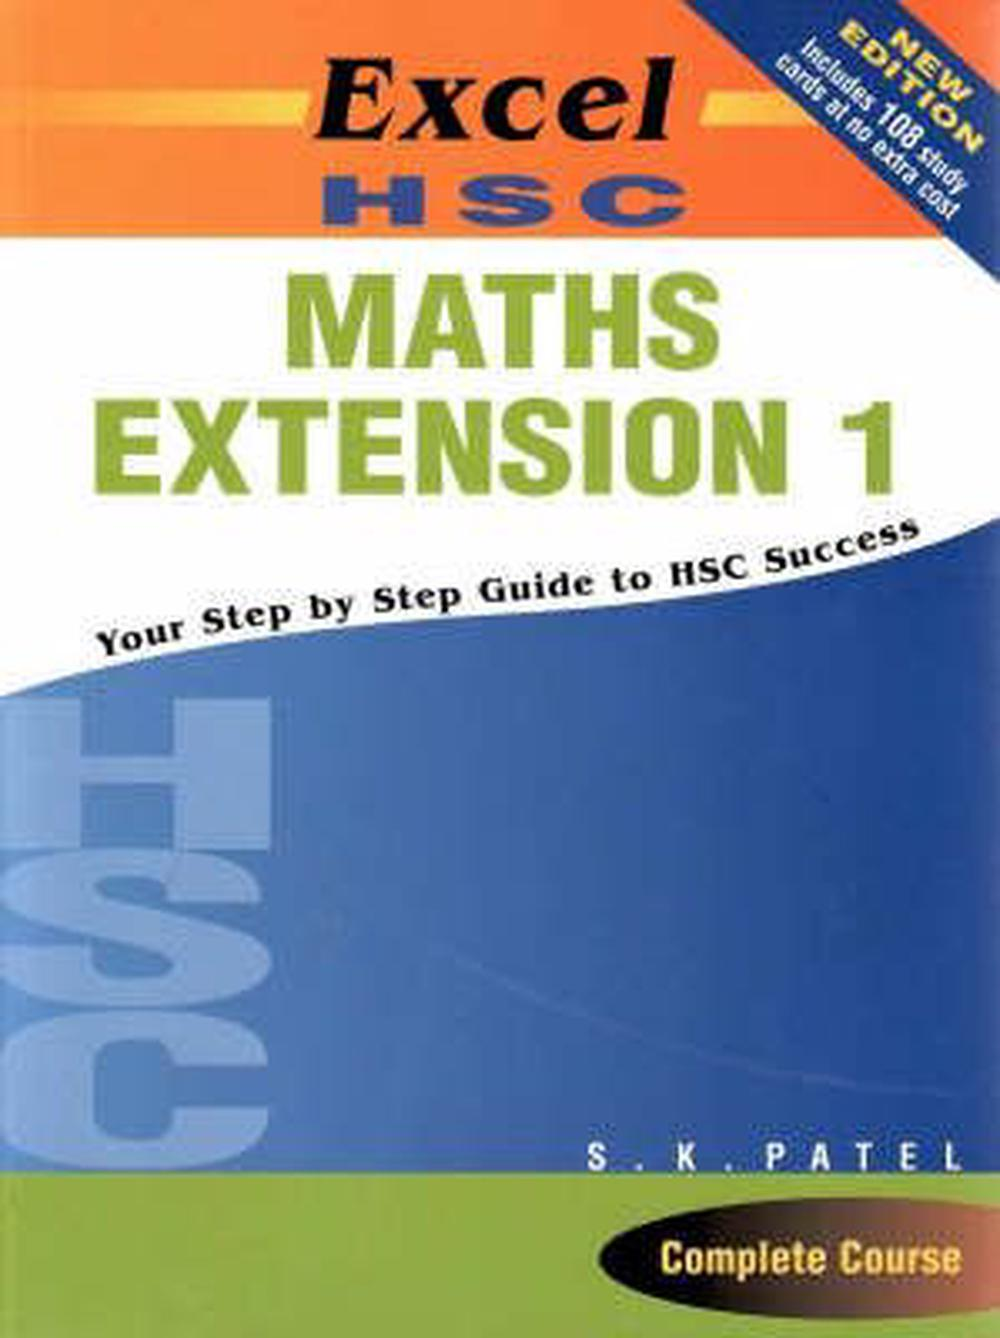 Excel HSC Maths Extension